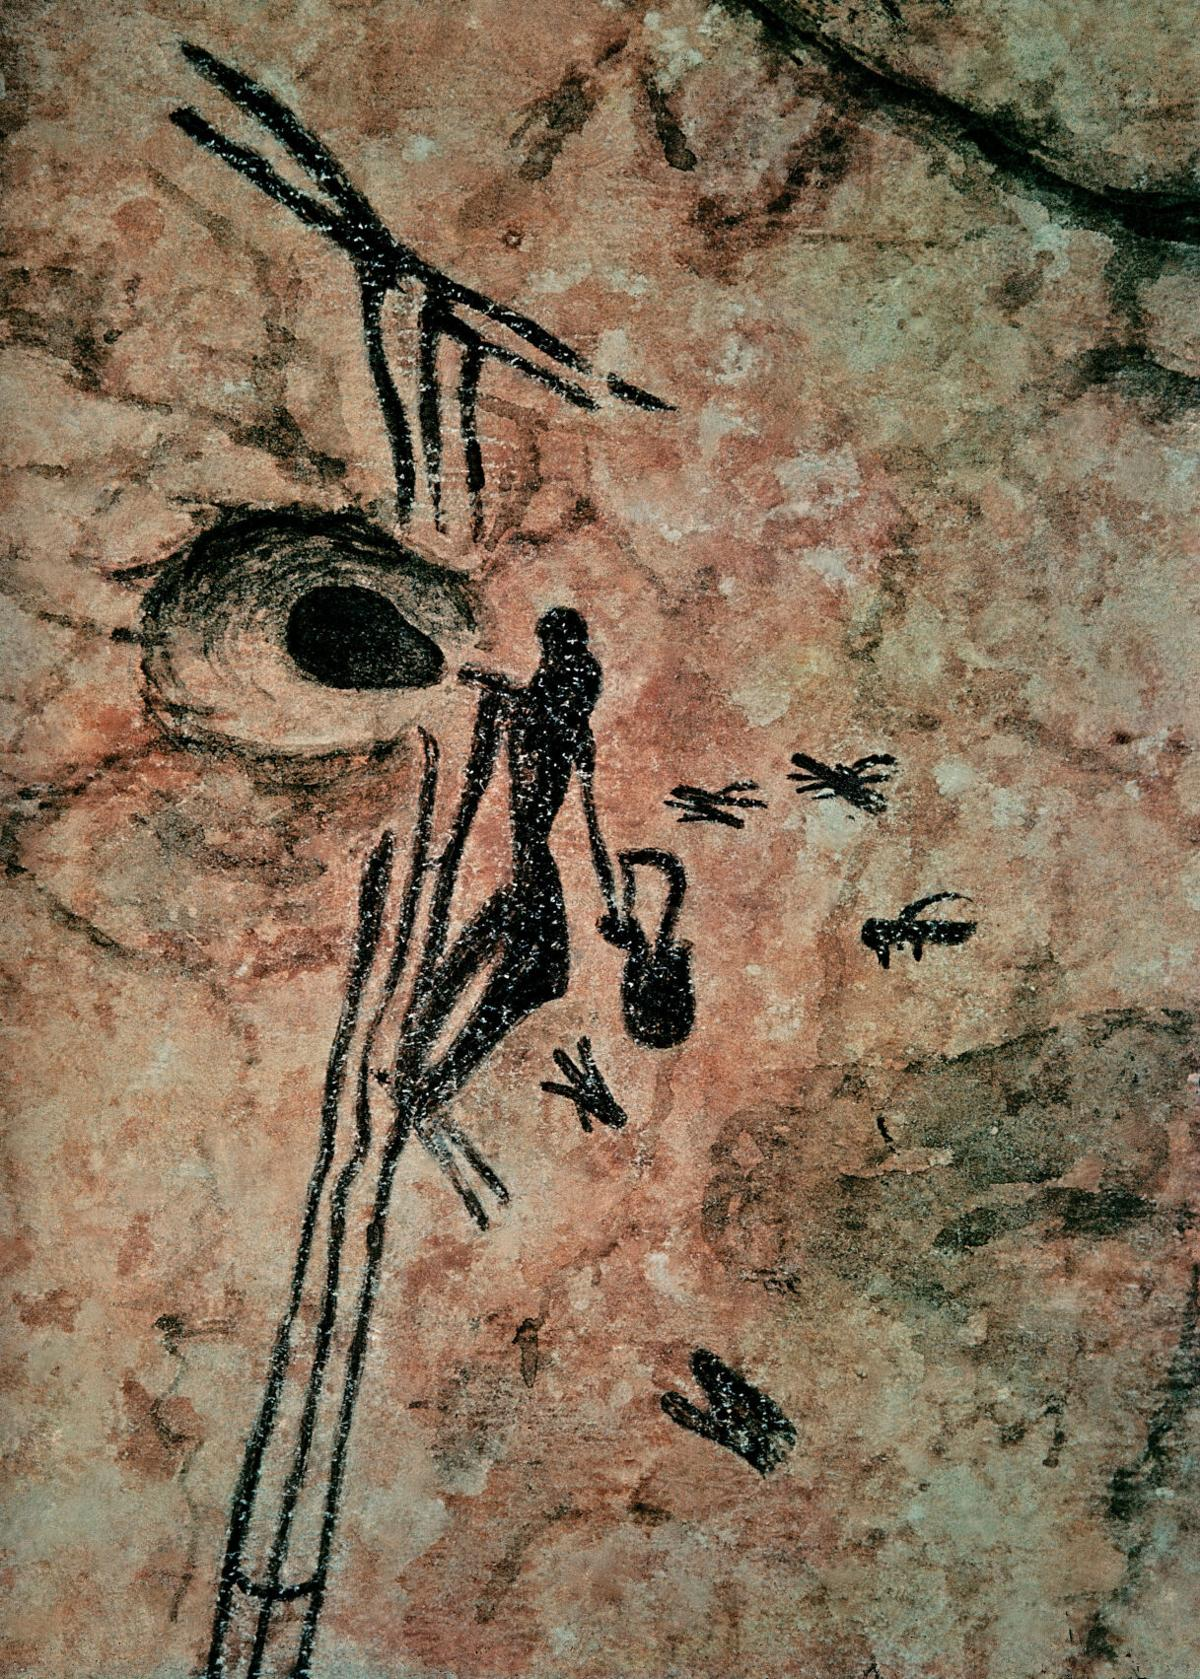 Cave Painting of Honey Harvest in Spain